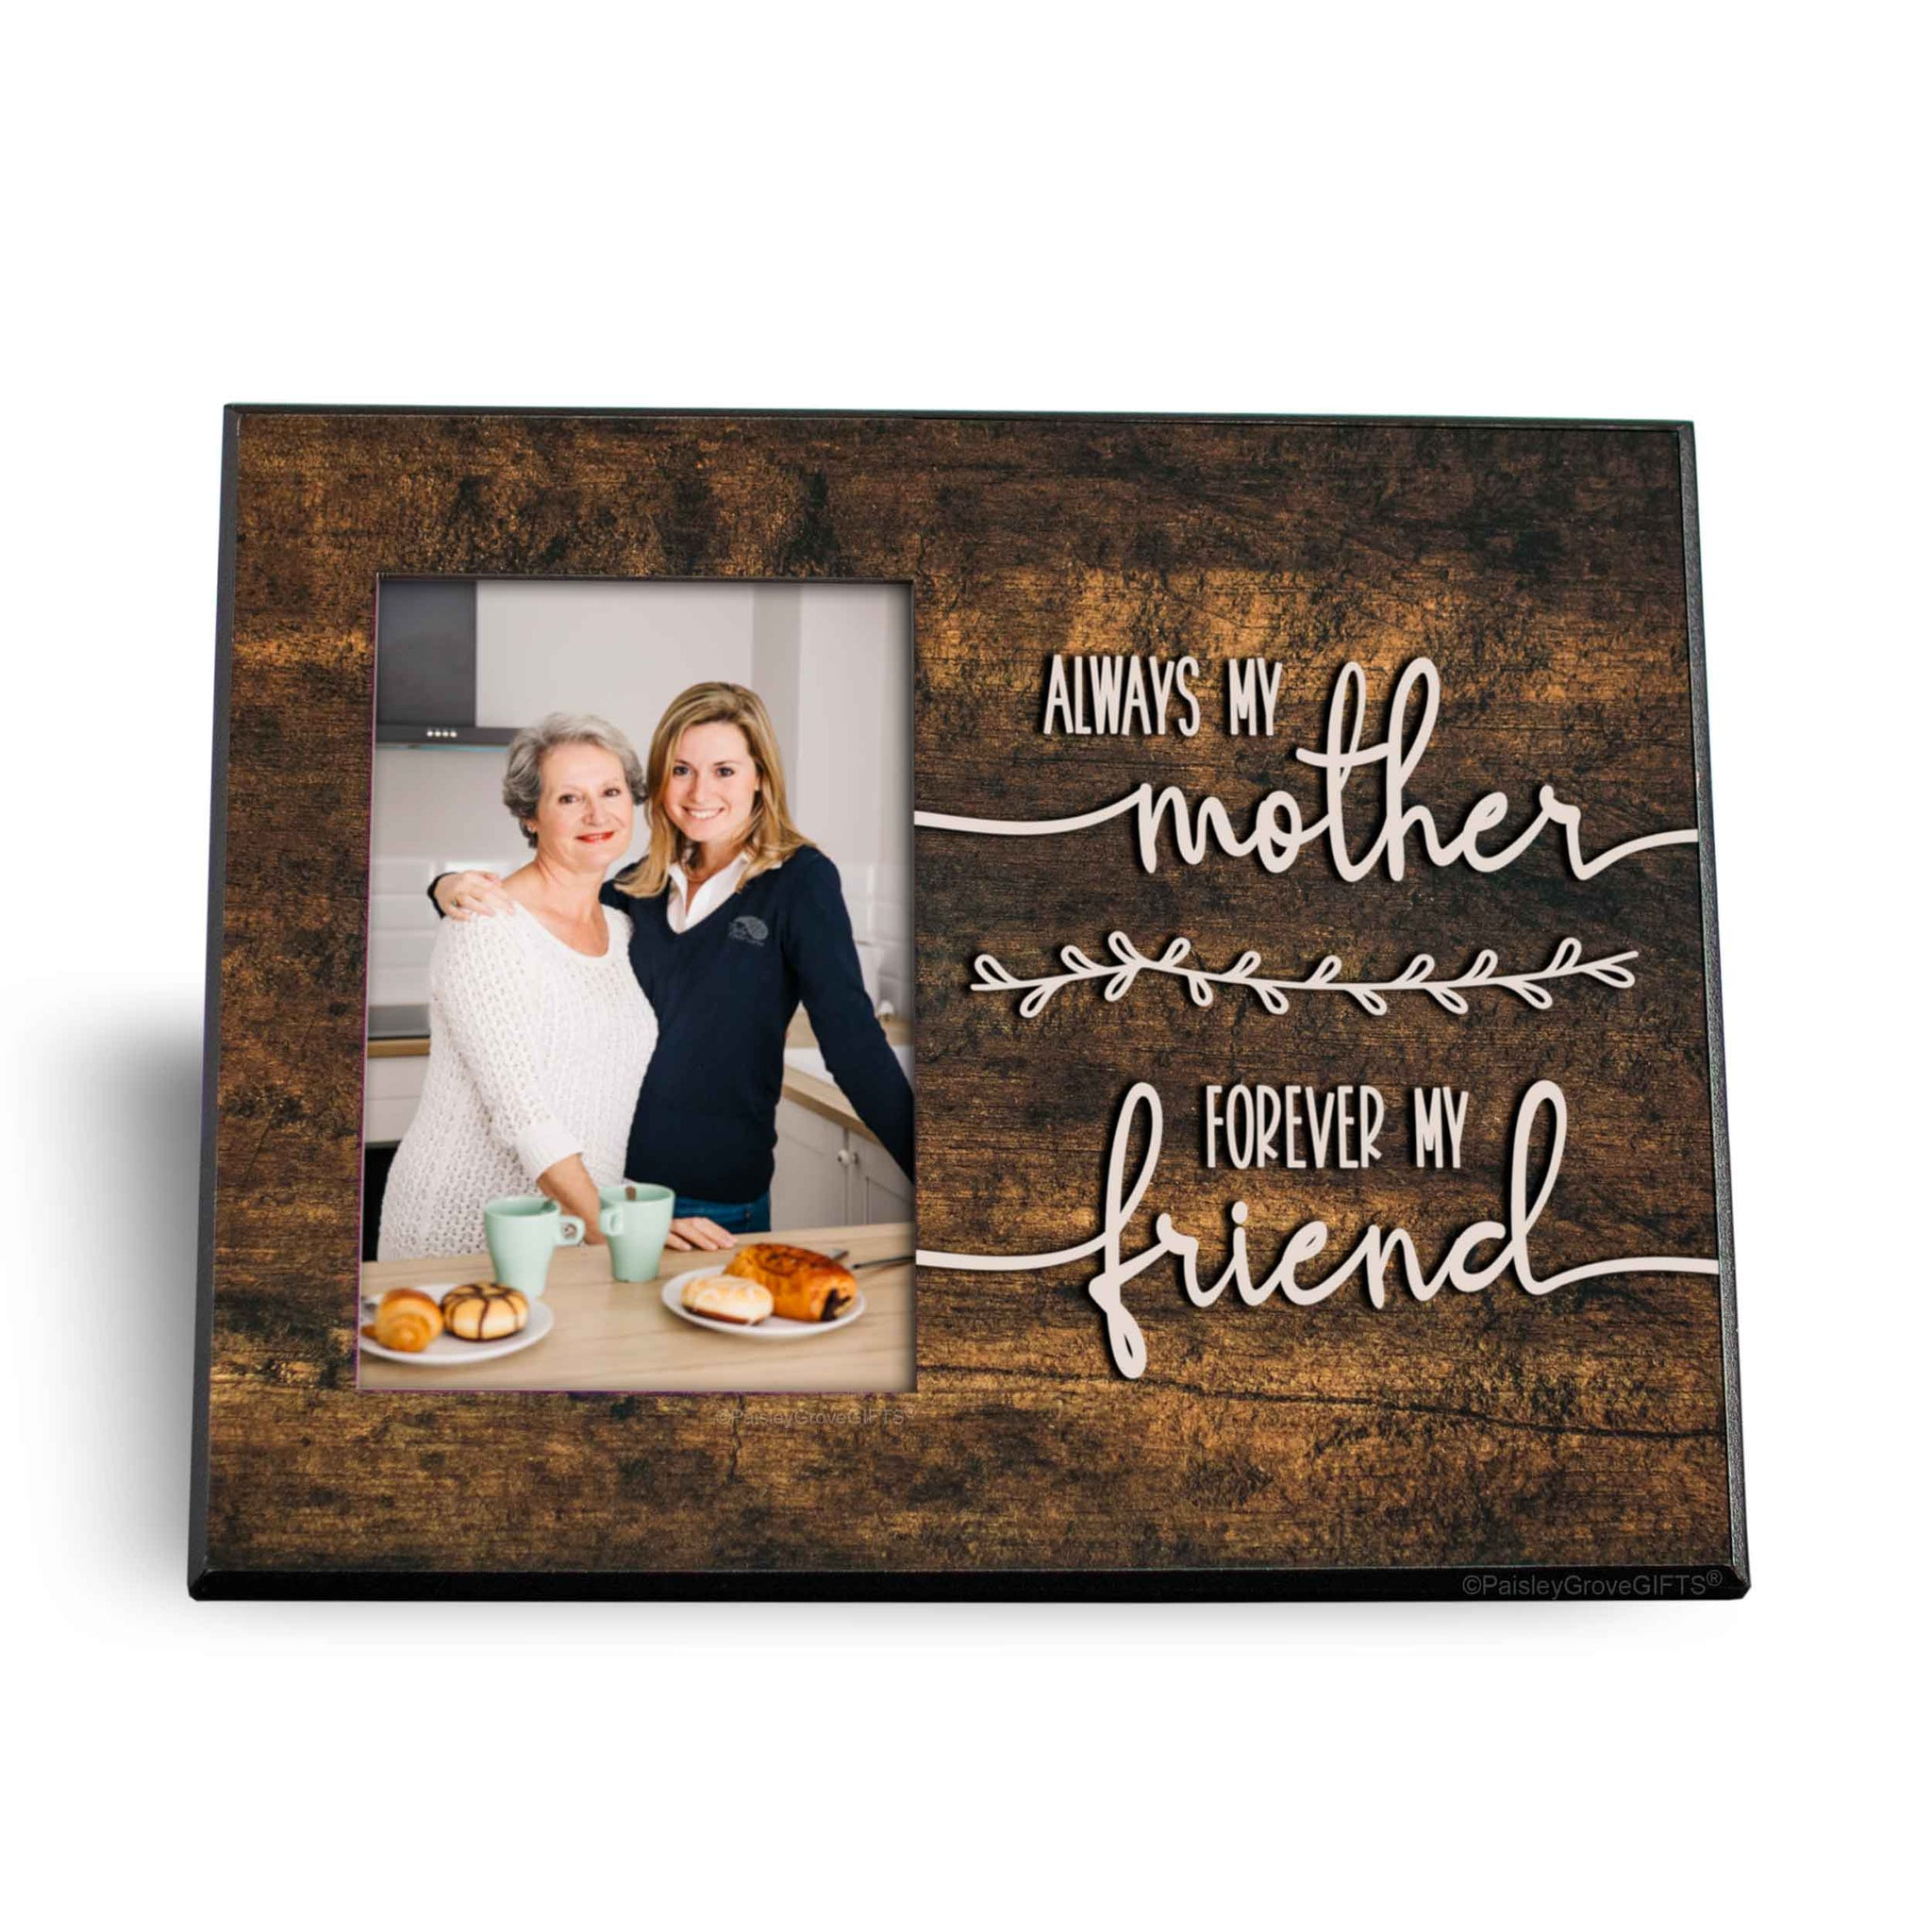 CopyrightPaisleyGroveGIFTS S201c1 Always my mother forever my friend Mom Quote on 8x10 frame rustic farmhouse style